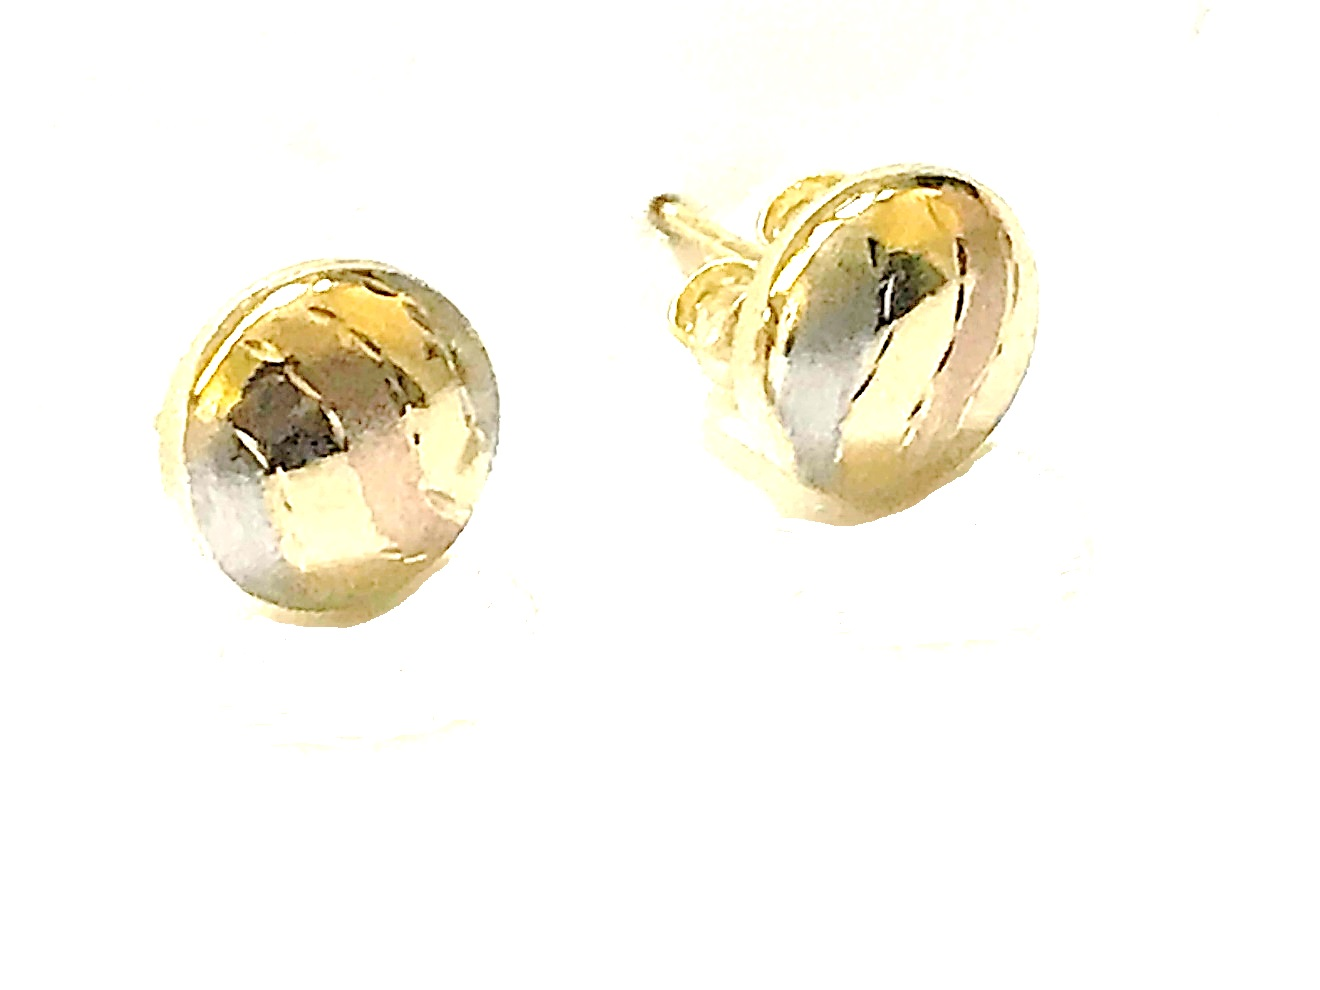 Stud earrings for woman - 10K 3 tone gold